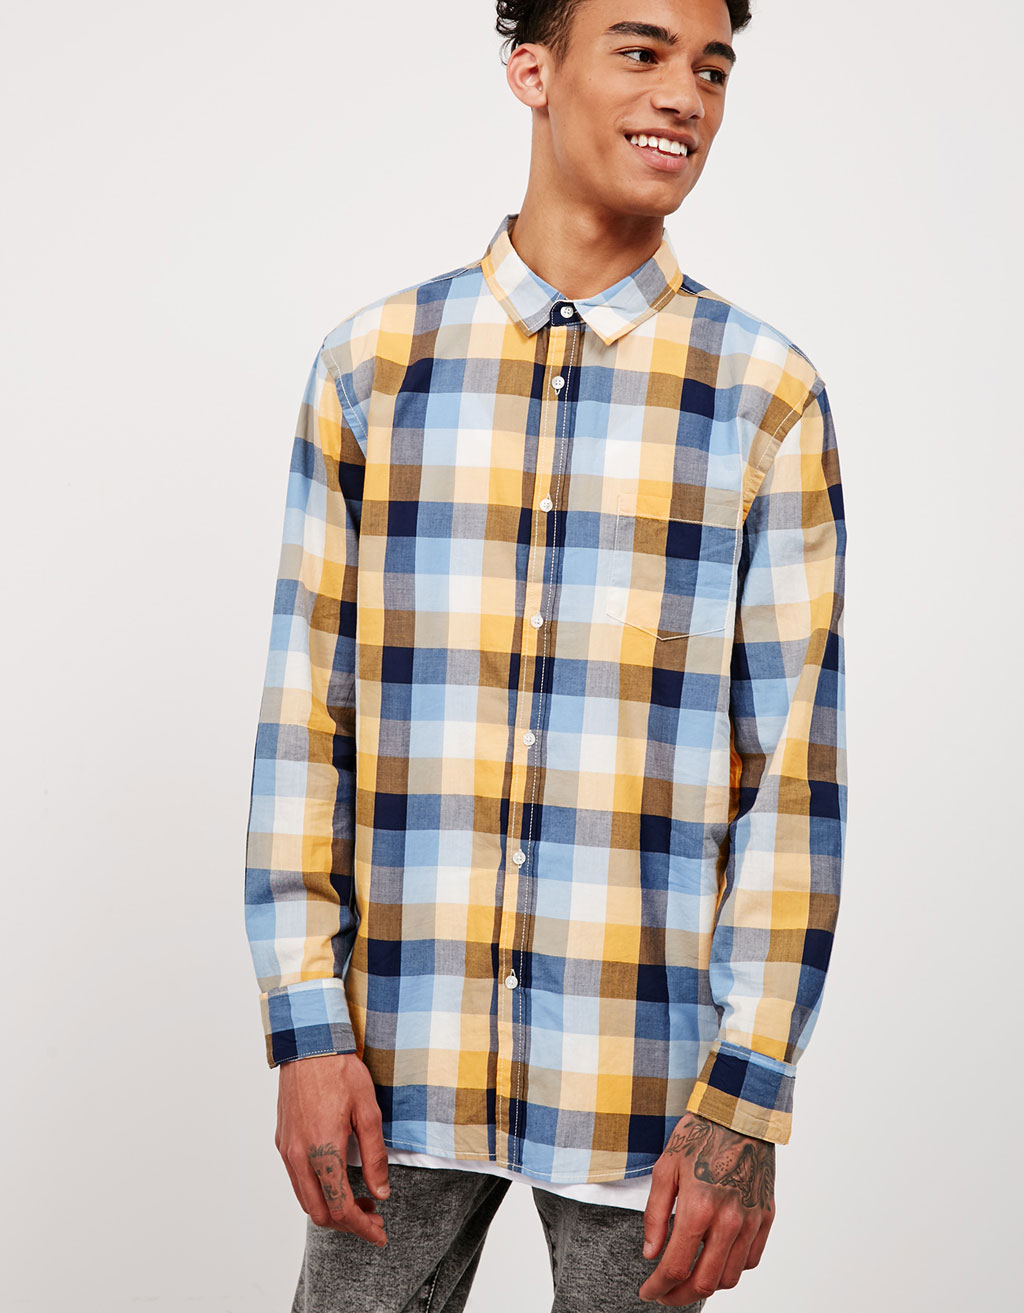 Multicolour checked top